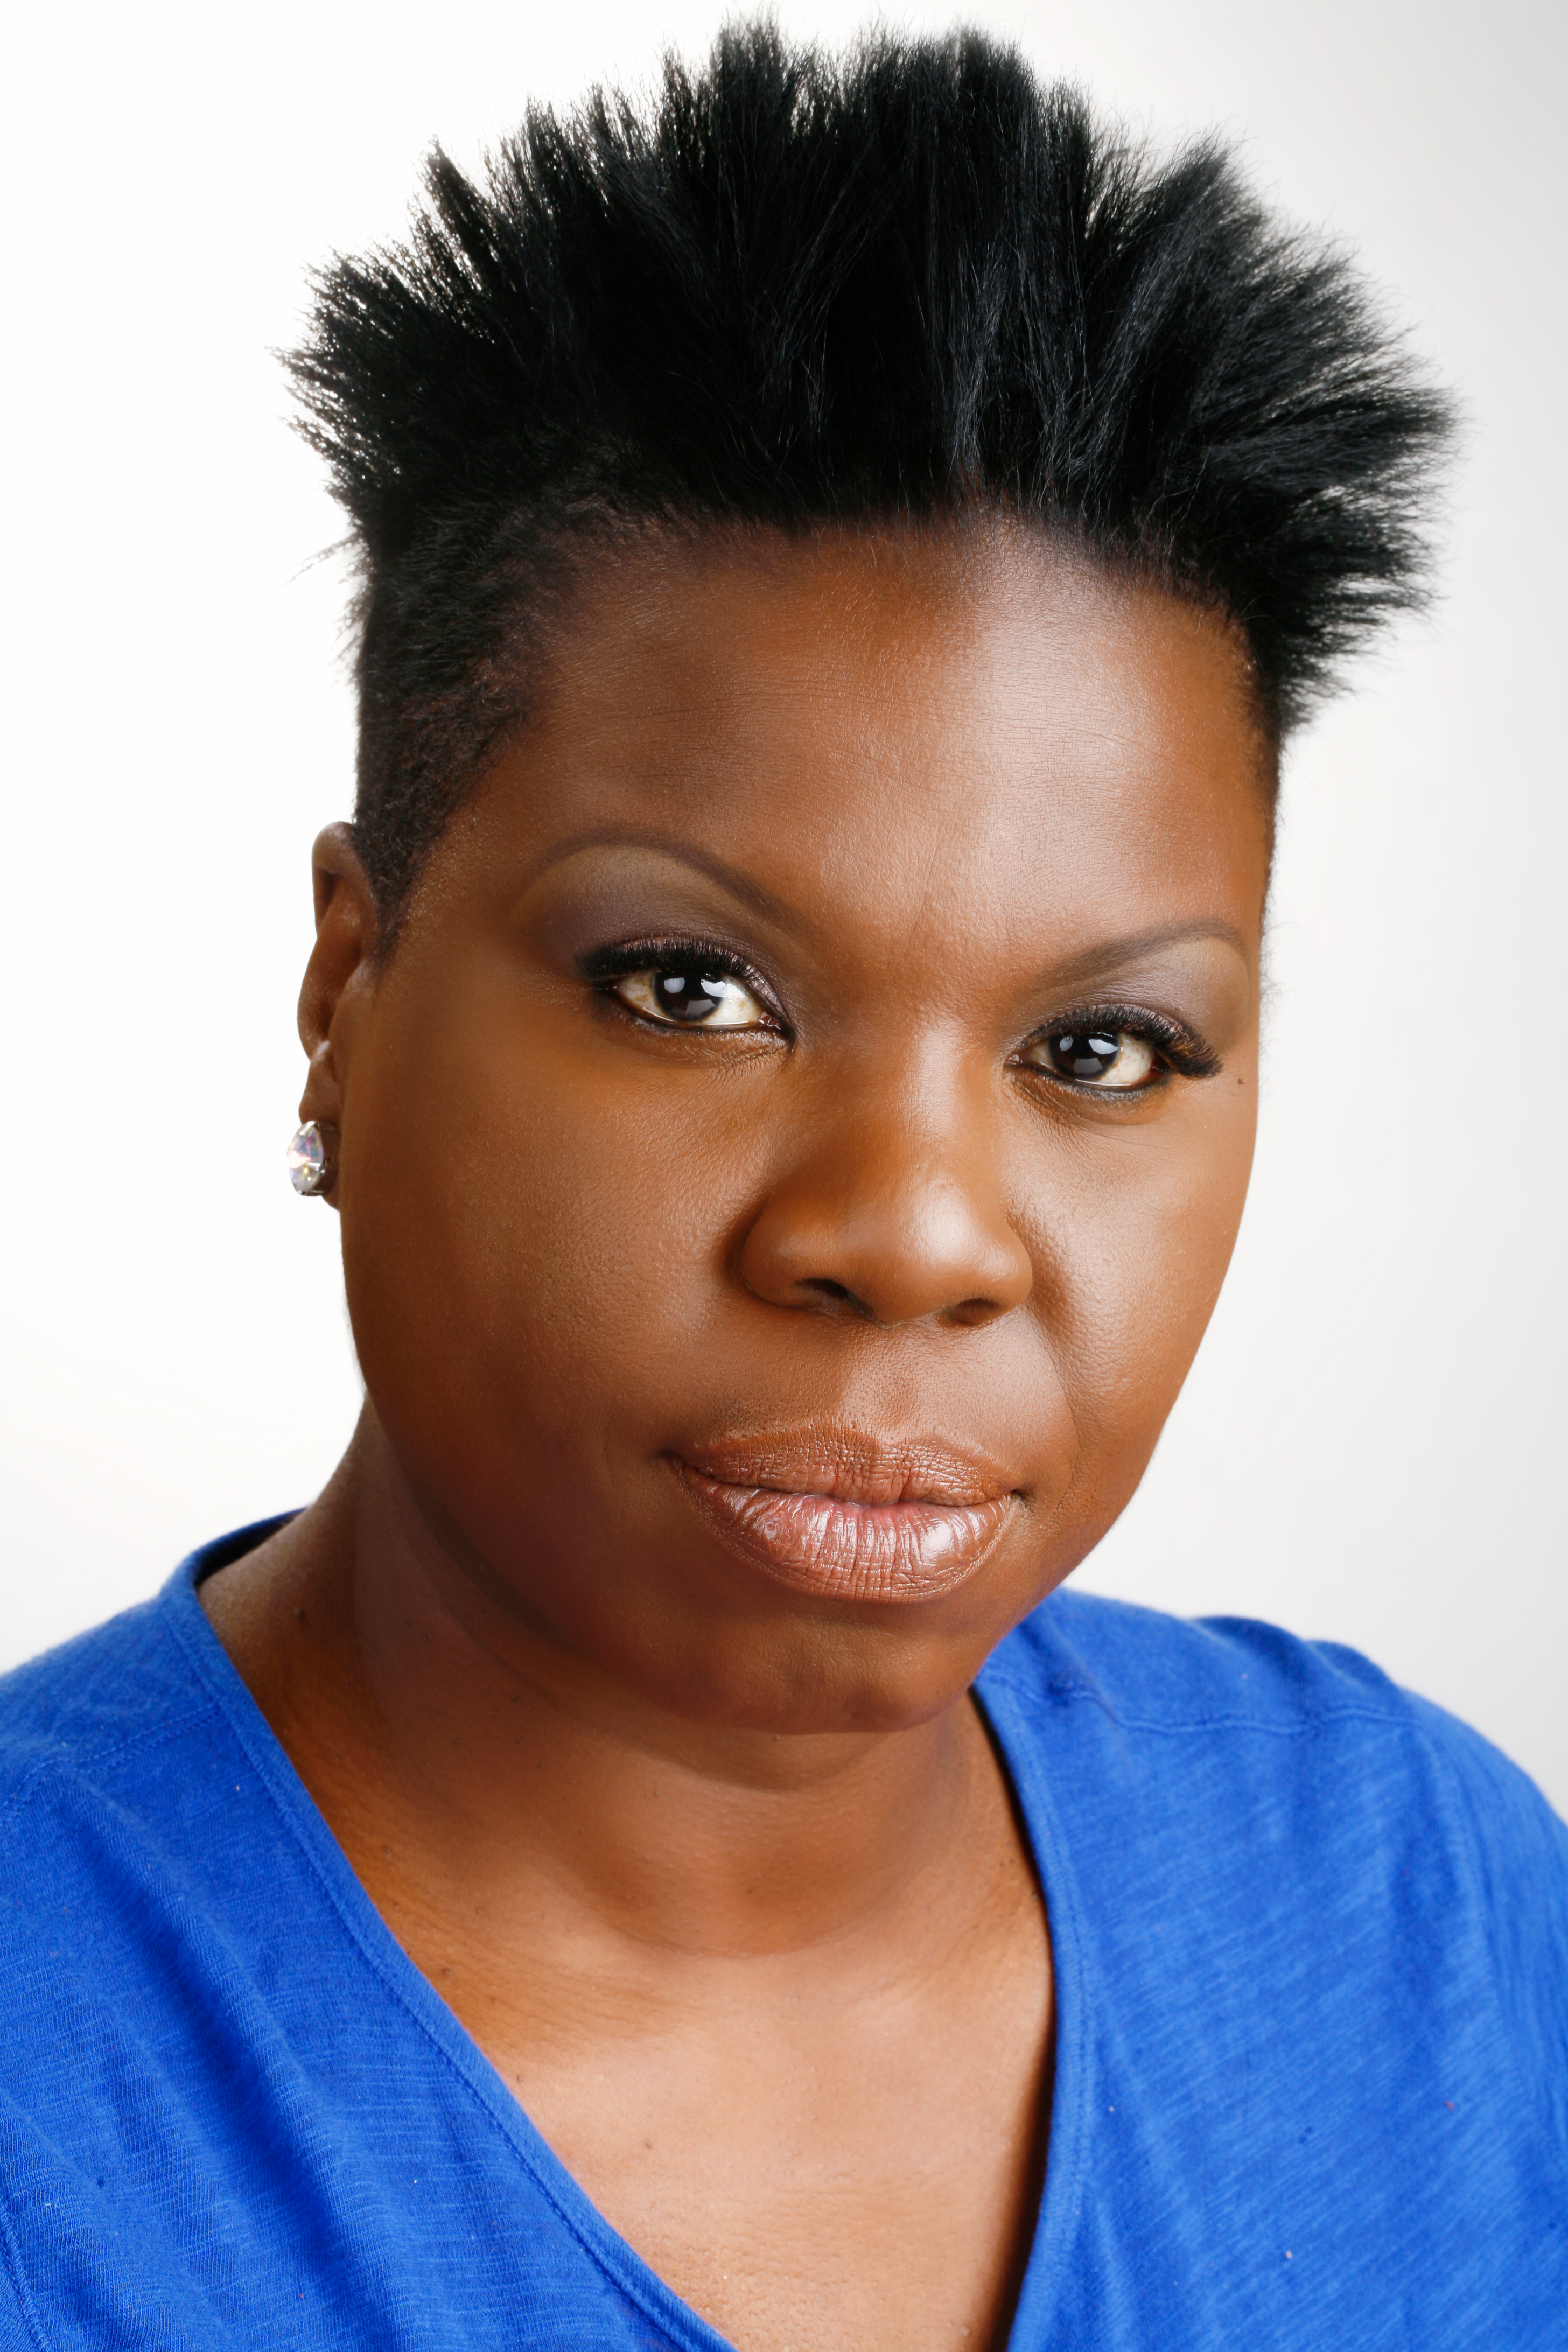 how tall is leslie jones